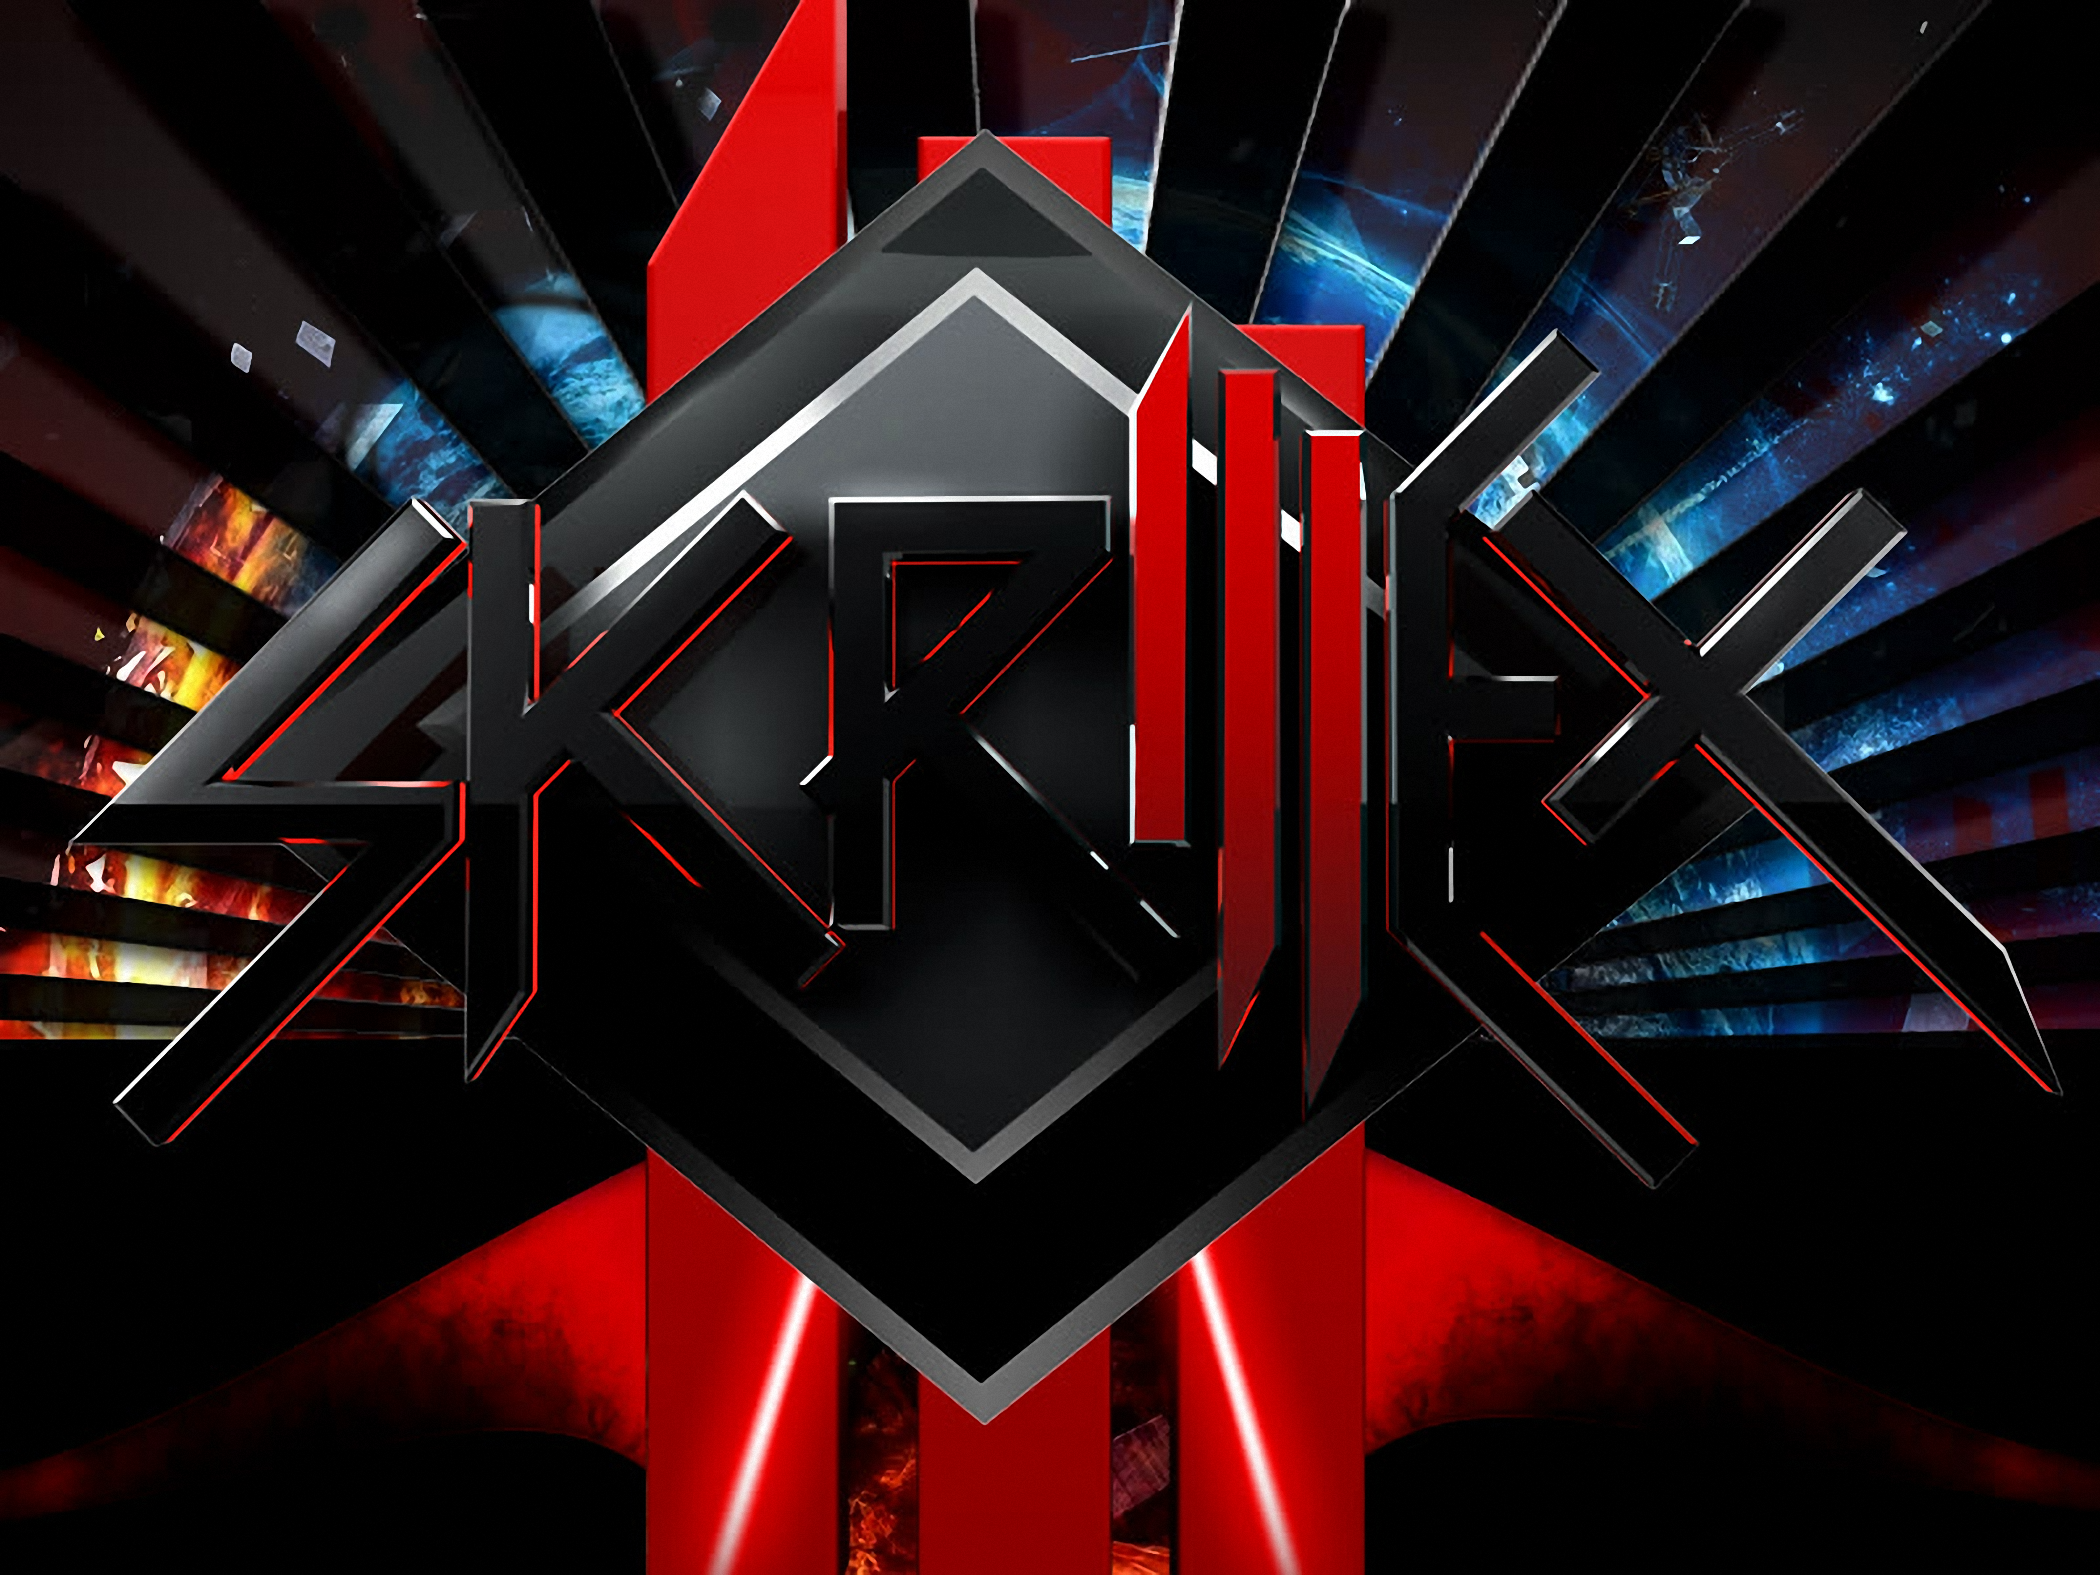 skrillex logo | Download dubstep skrillex skrillex logo dub step